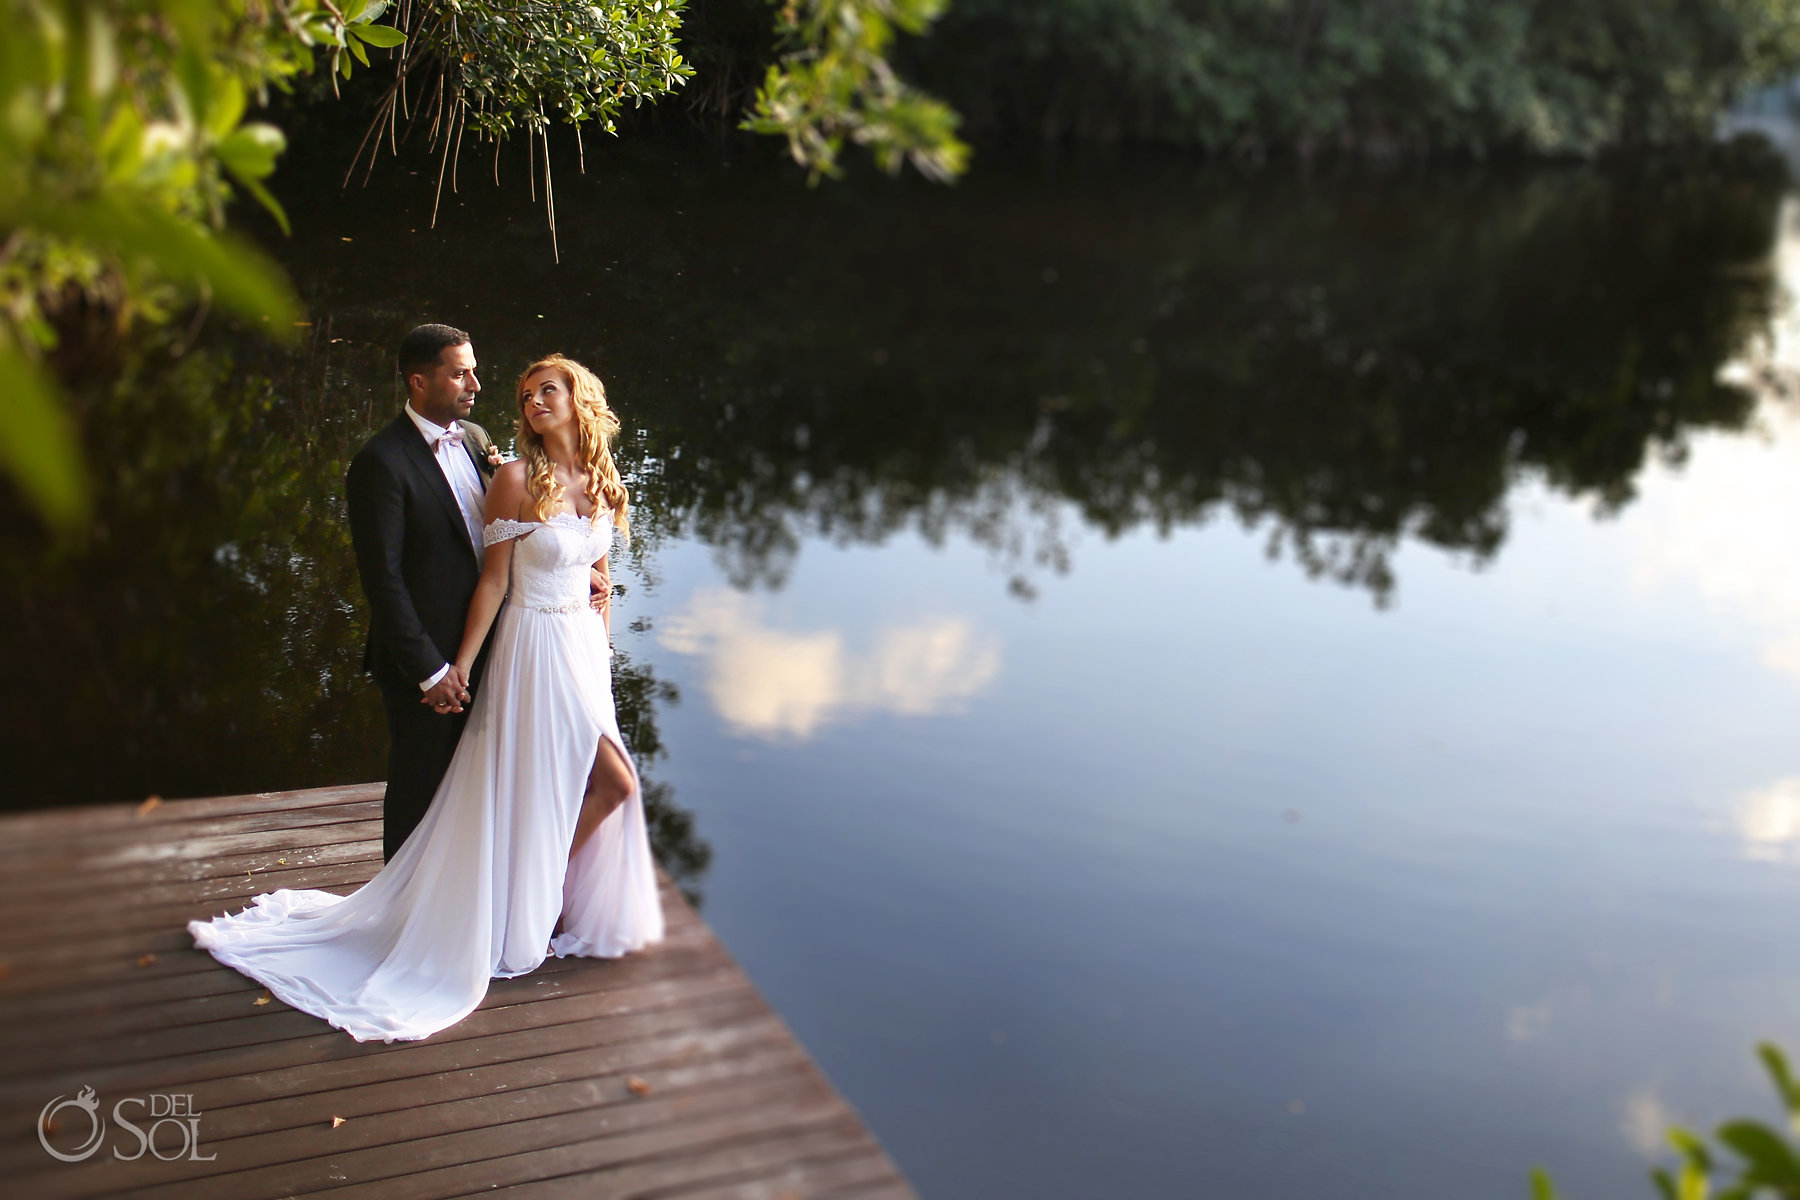 Bride and Groom Photo Session at cenote mirror best elopement locations Mexico Blue Diamond Luxury Boutique Hotel